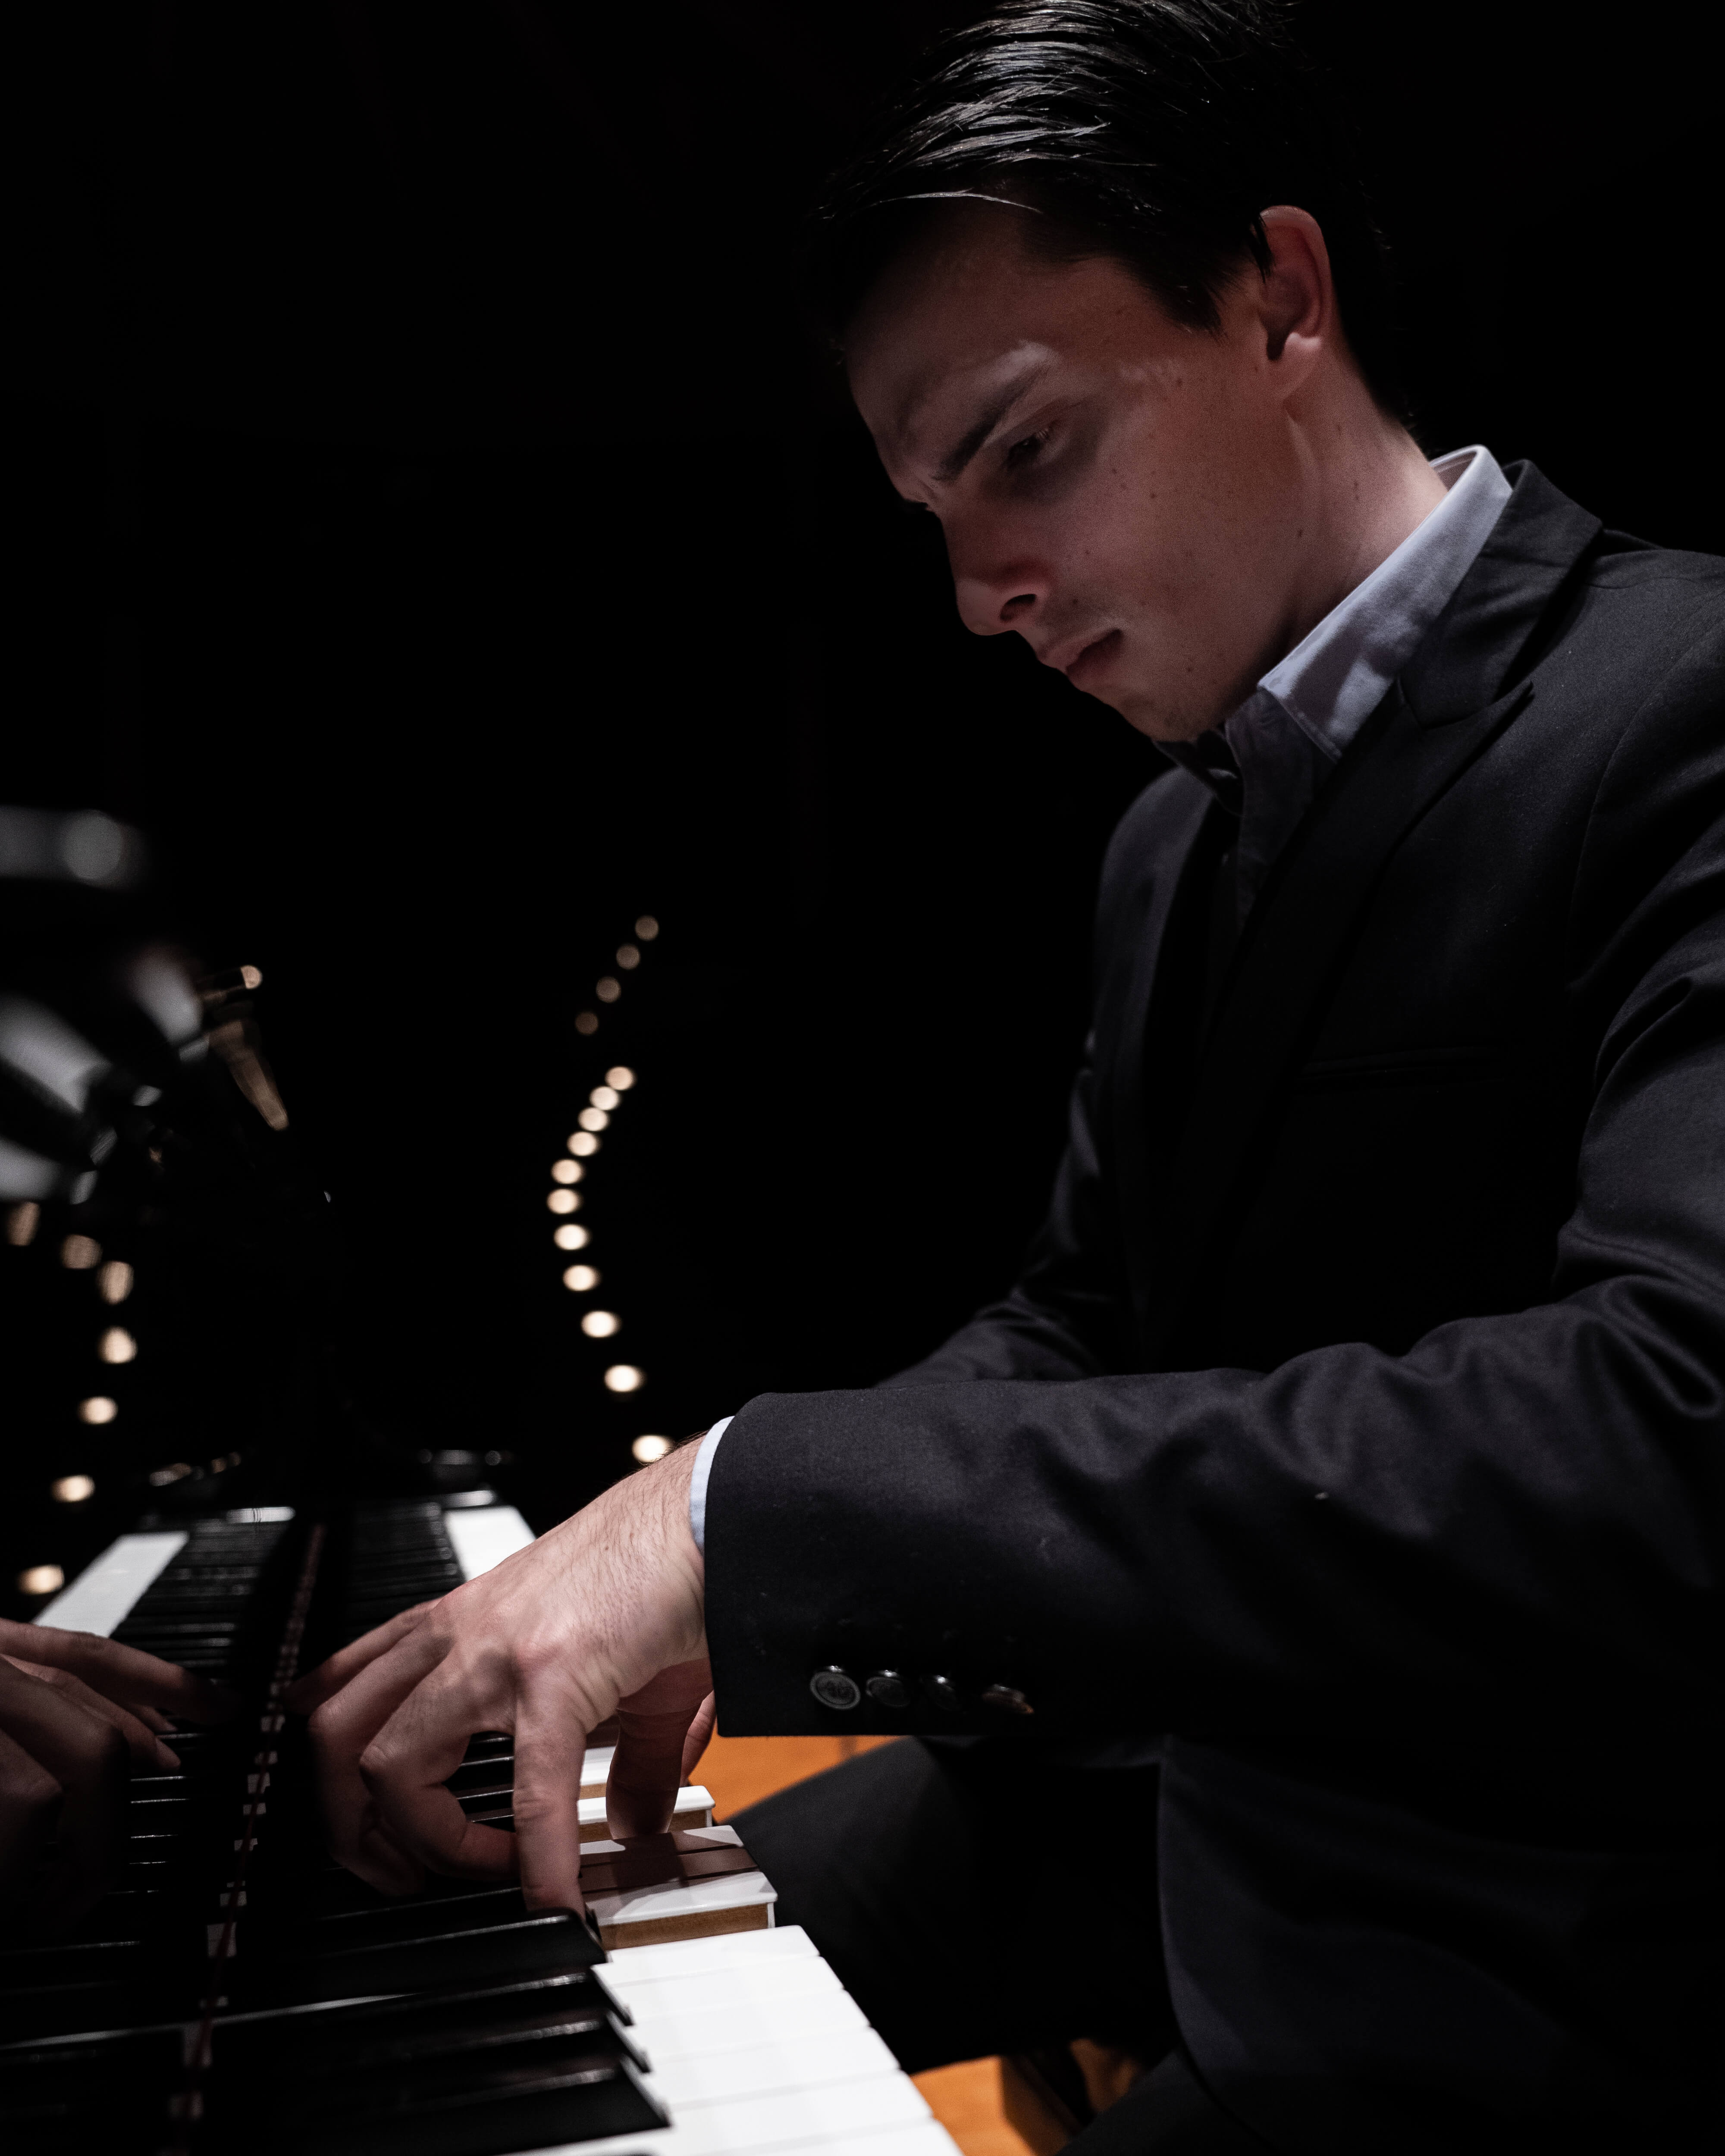 Pianist expressing himself while playing beautiful music.